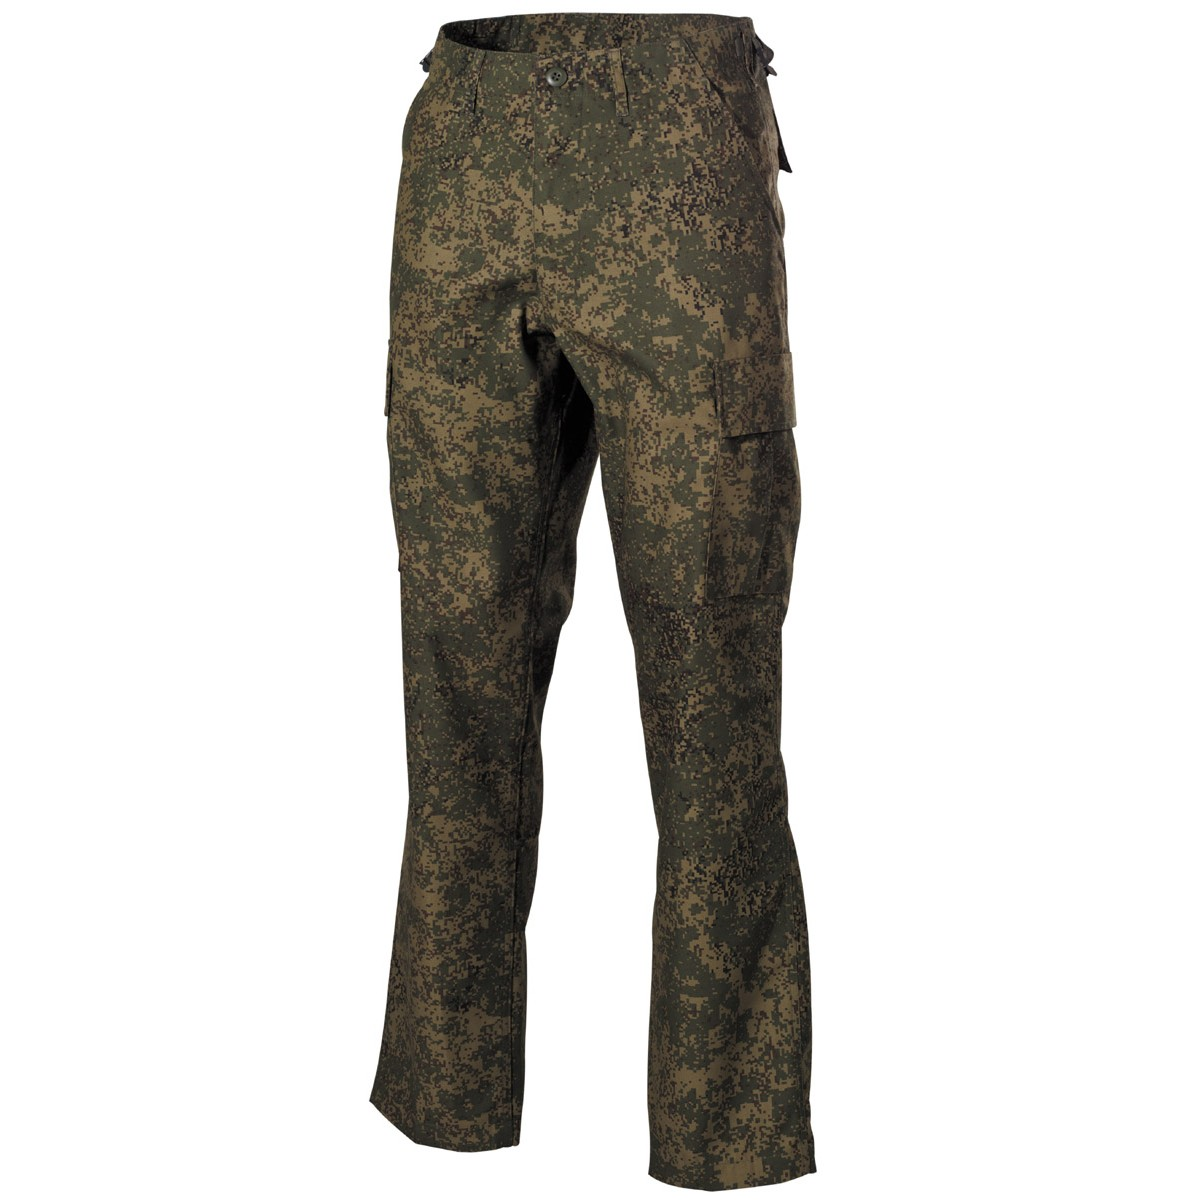 Russian Army Digital Camo Pattern BDU Field Pants